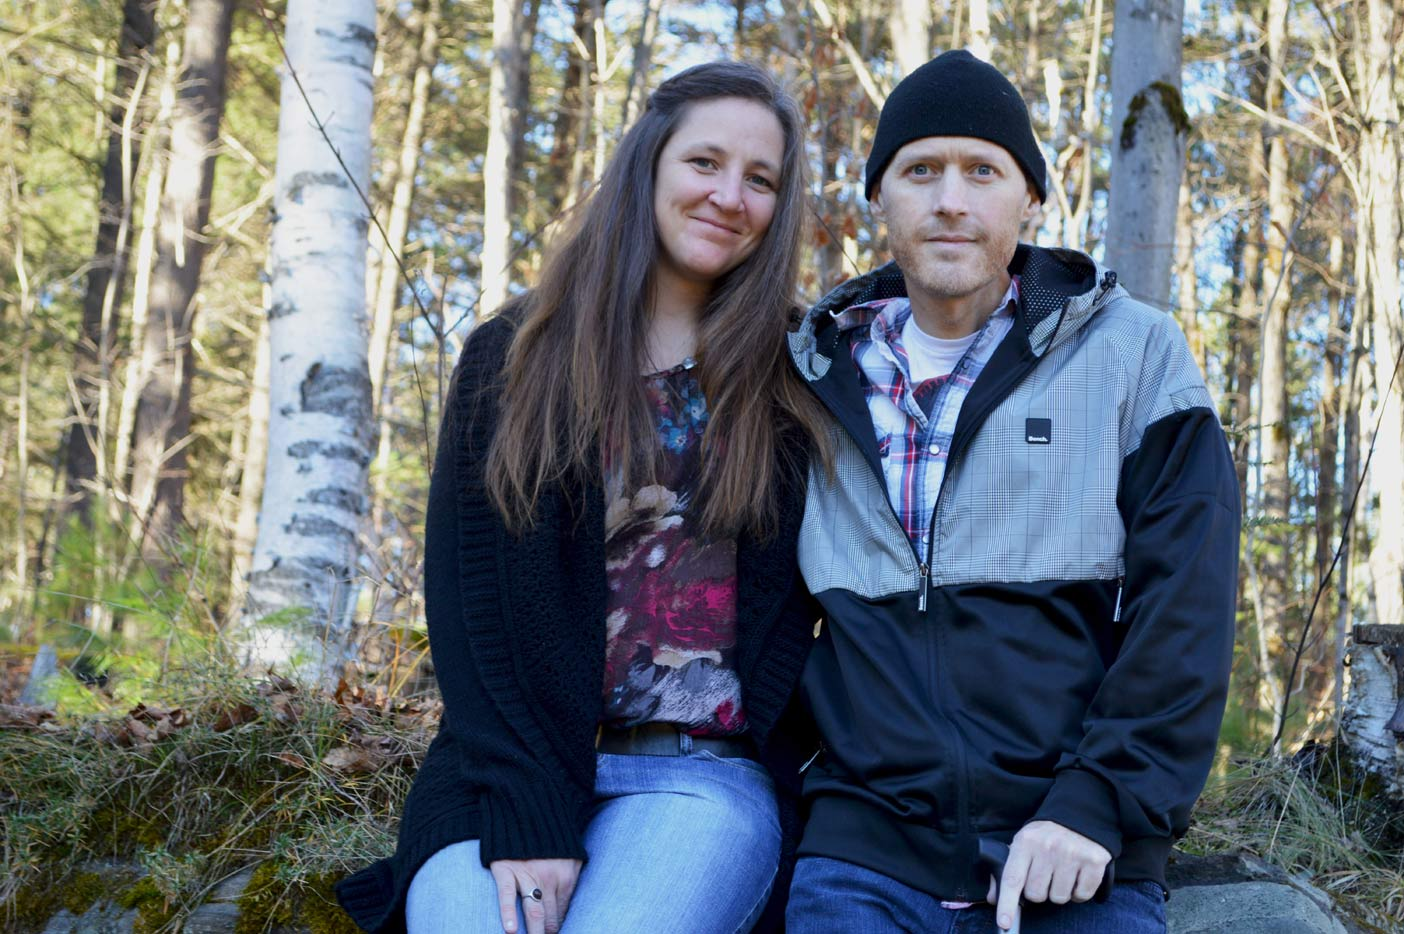 Dave says Karrie has been by his side every step of the way through his battle with cancer.